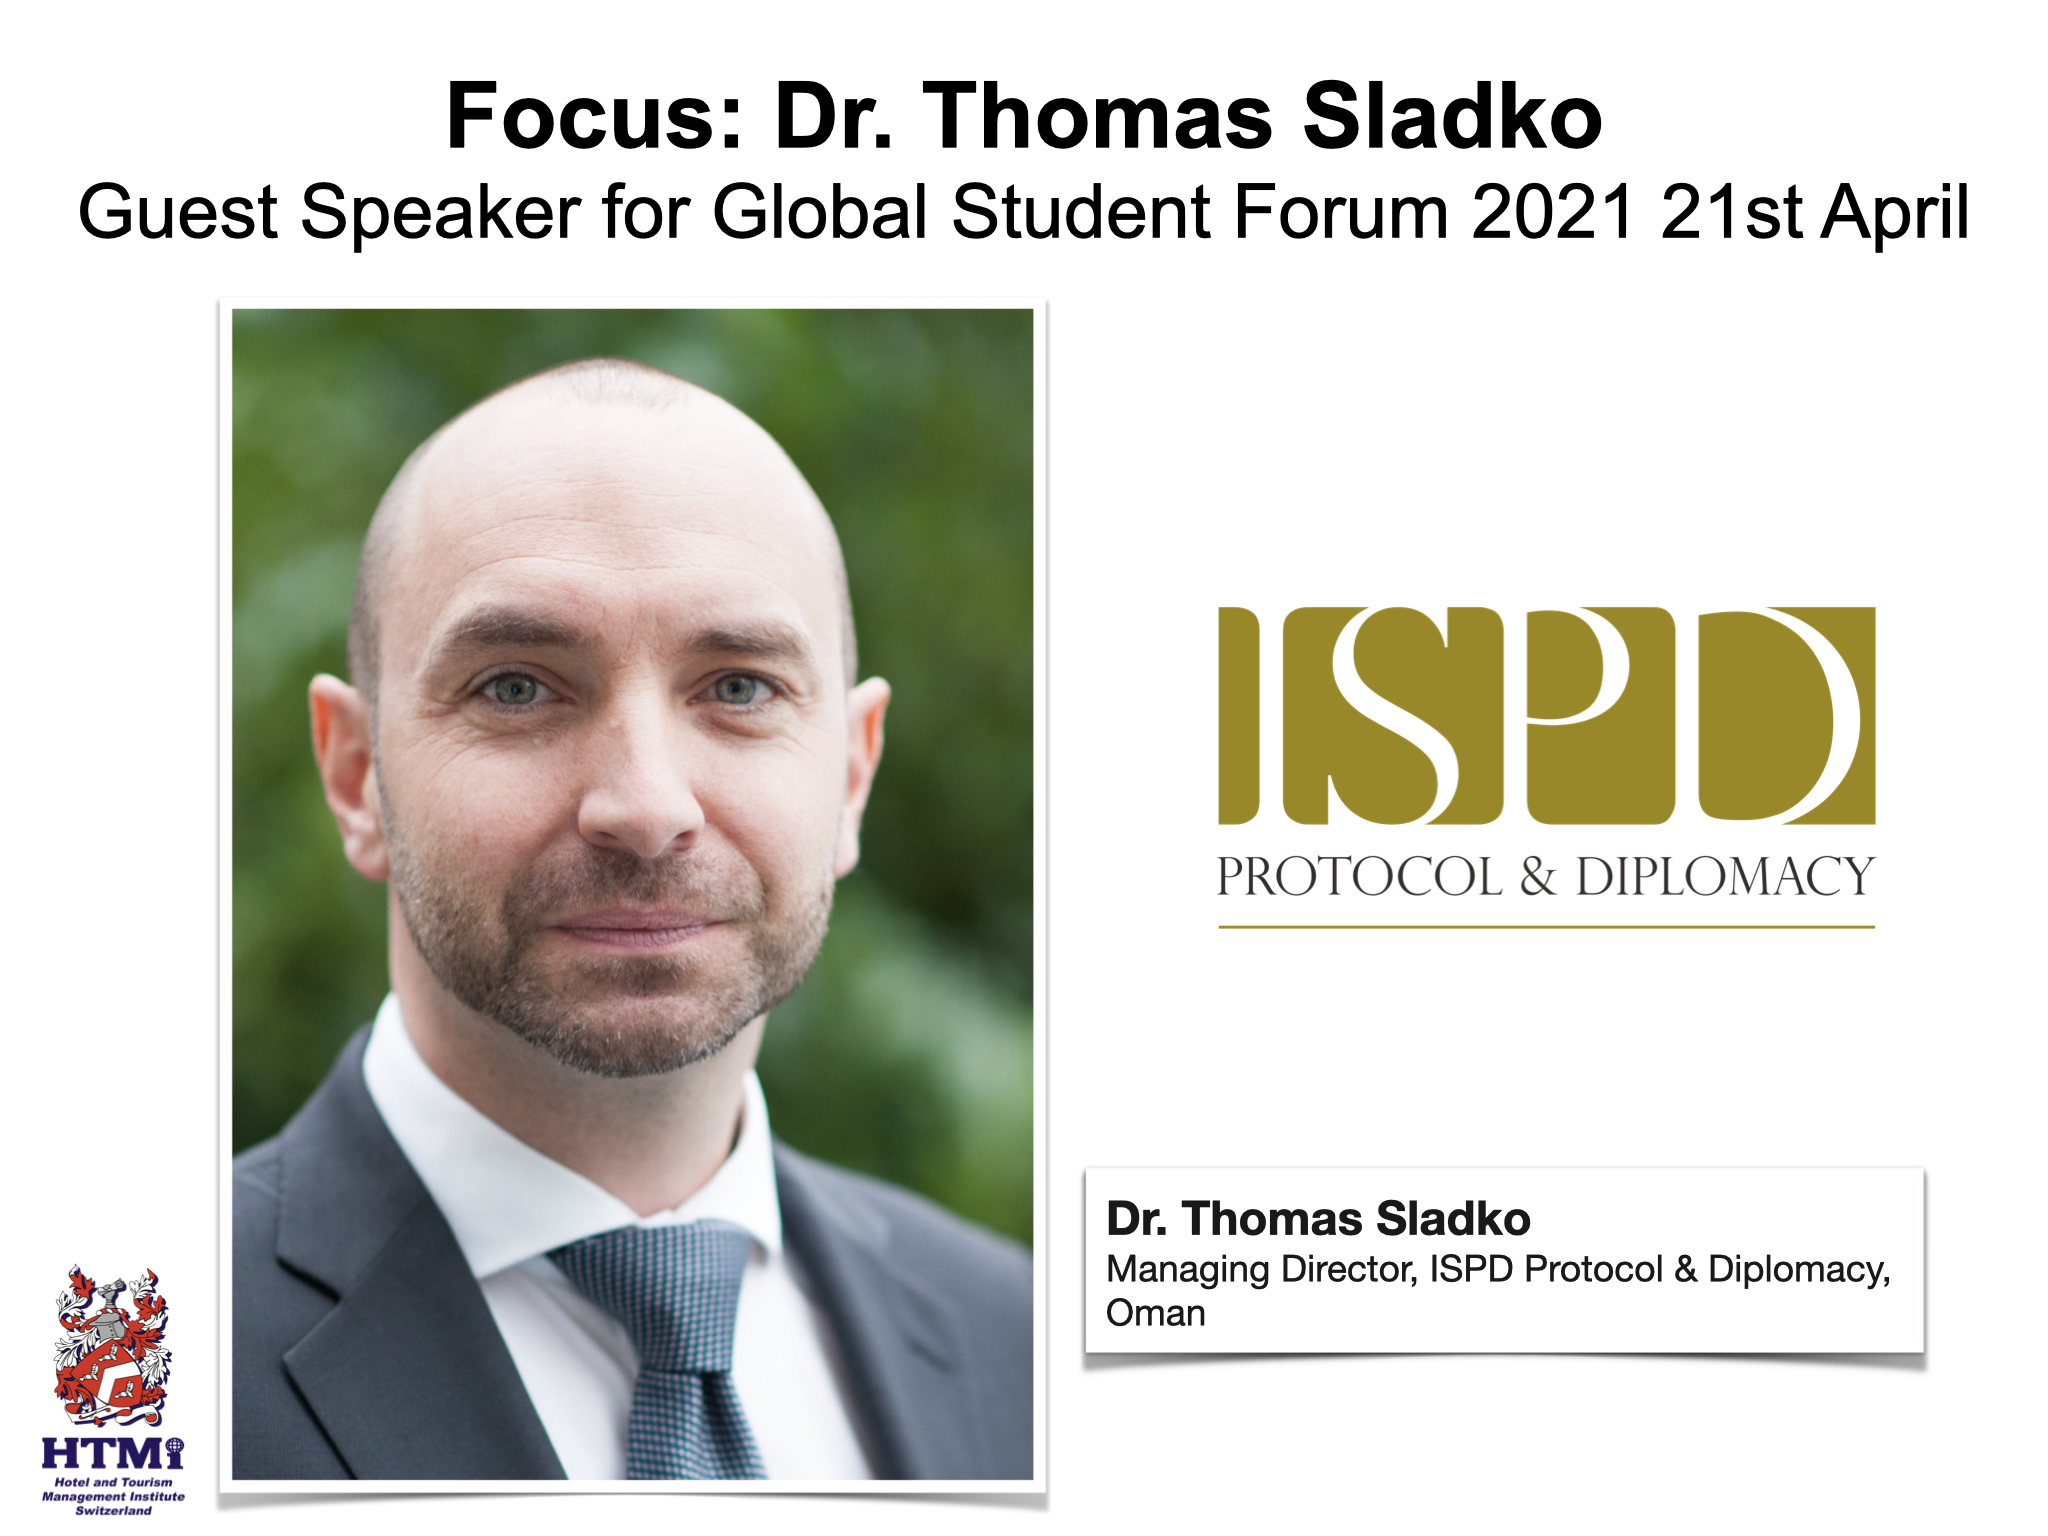 Focus: Dr. Thomas Sladko Guest Speaker for Global Student Forum 2021 21st April